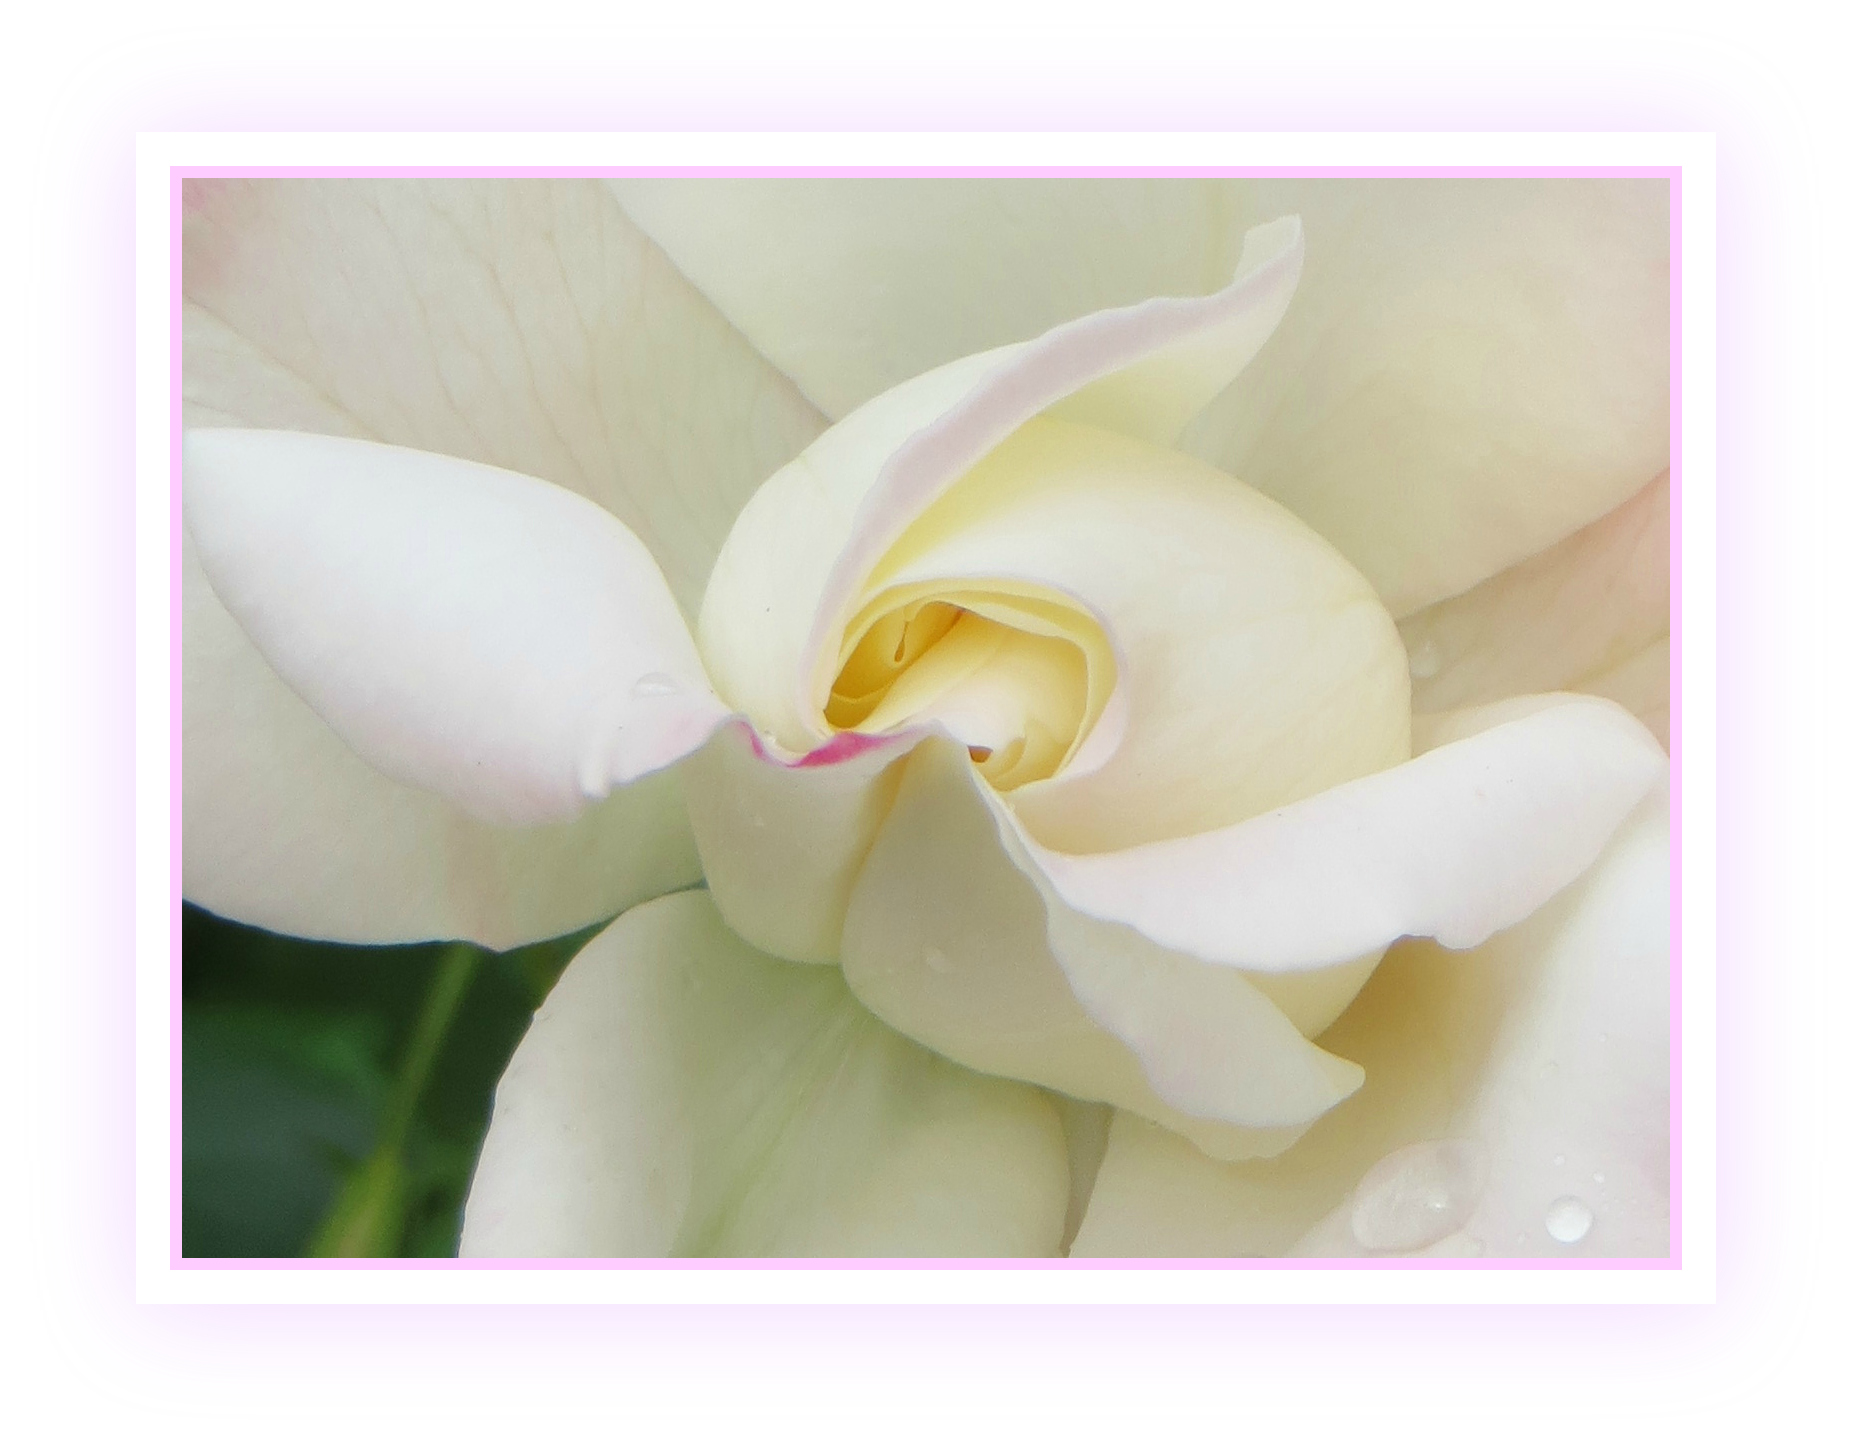 Regal Rosa Wallpaper White Nature Macro Petals Frame Curvy Romantic